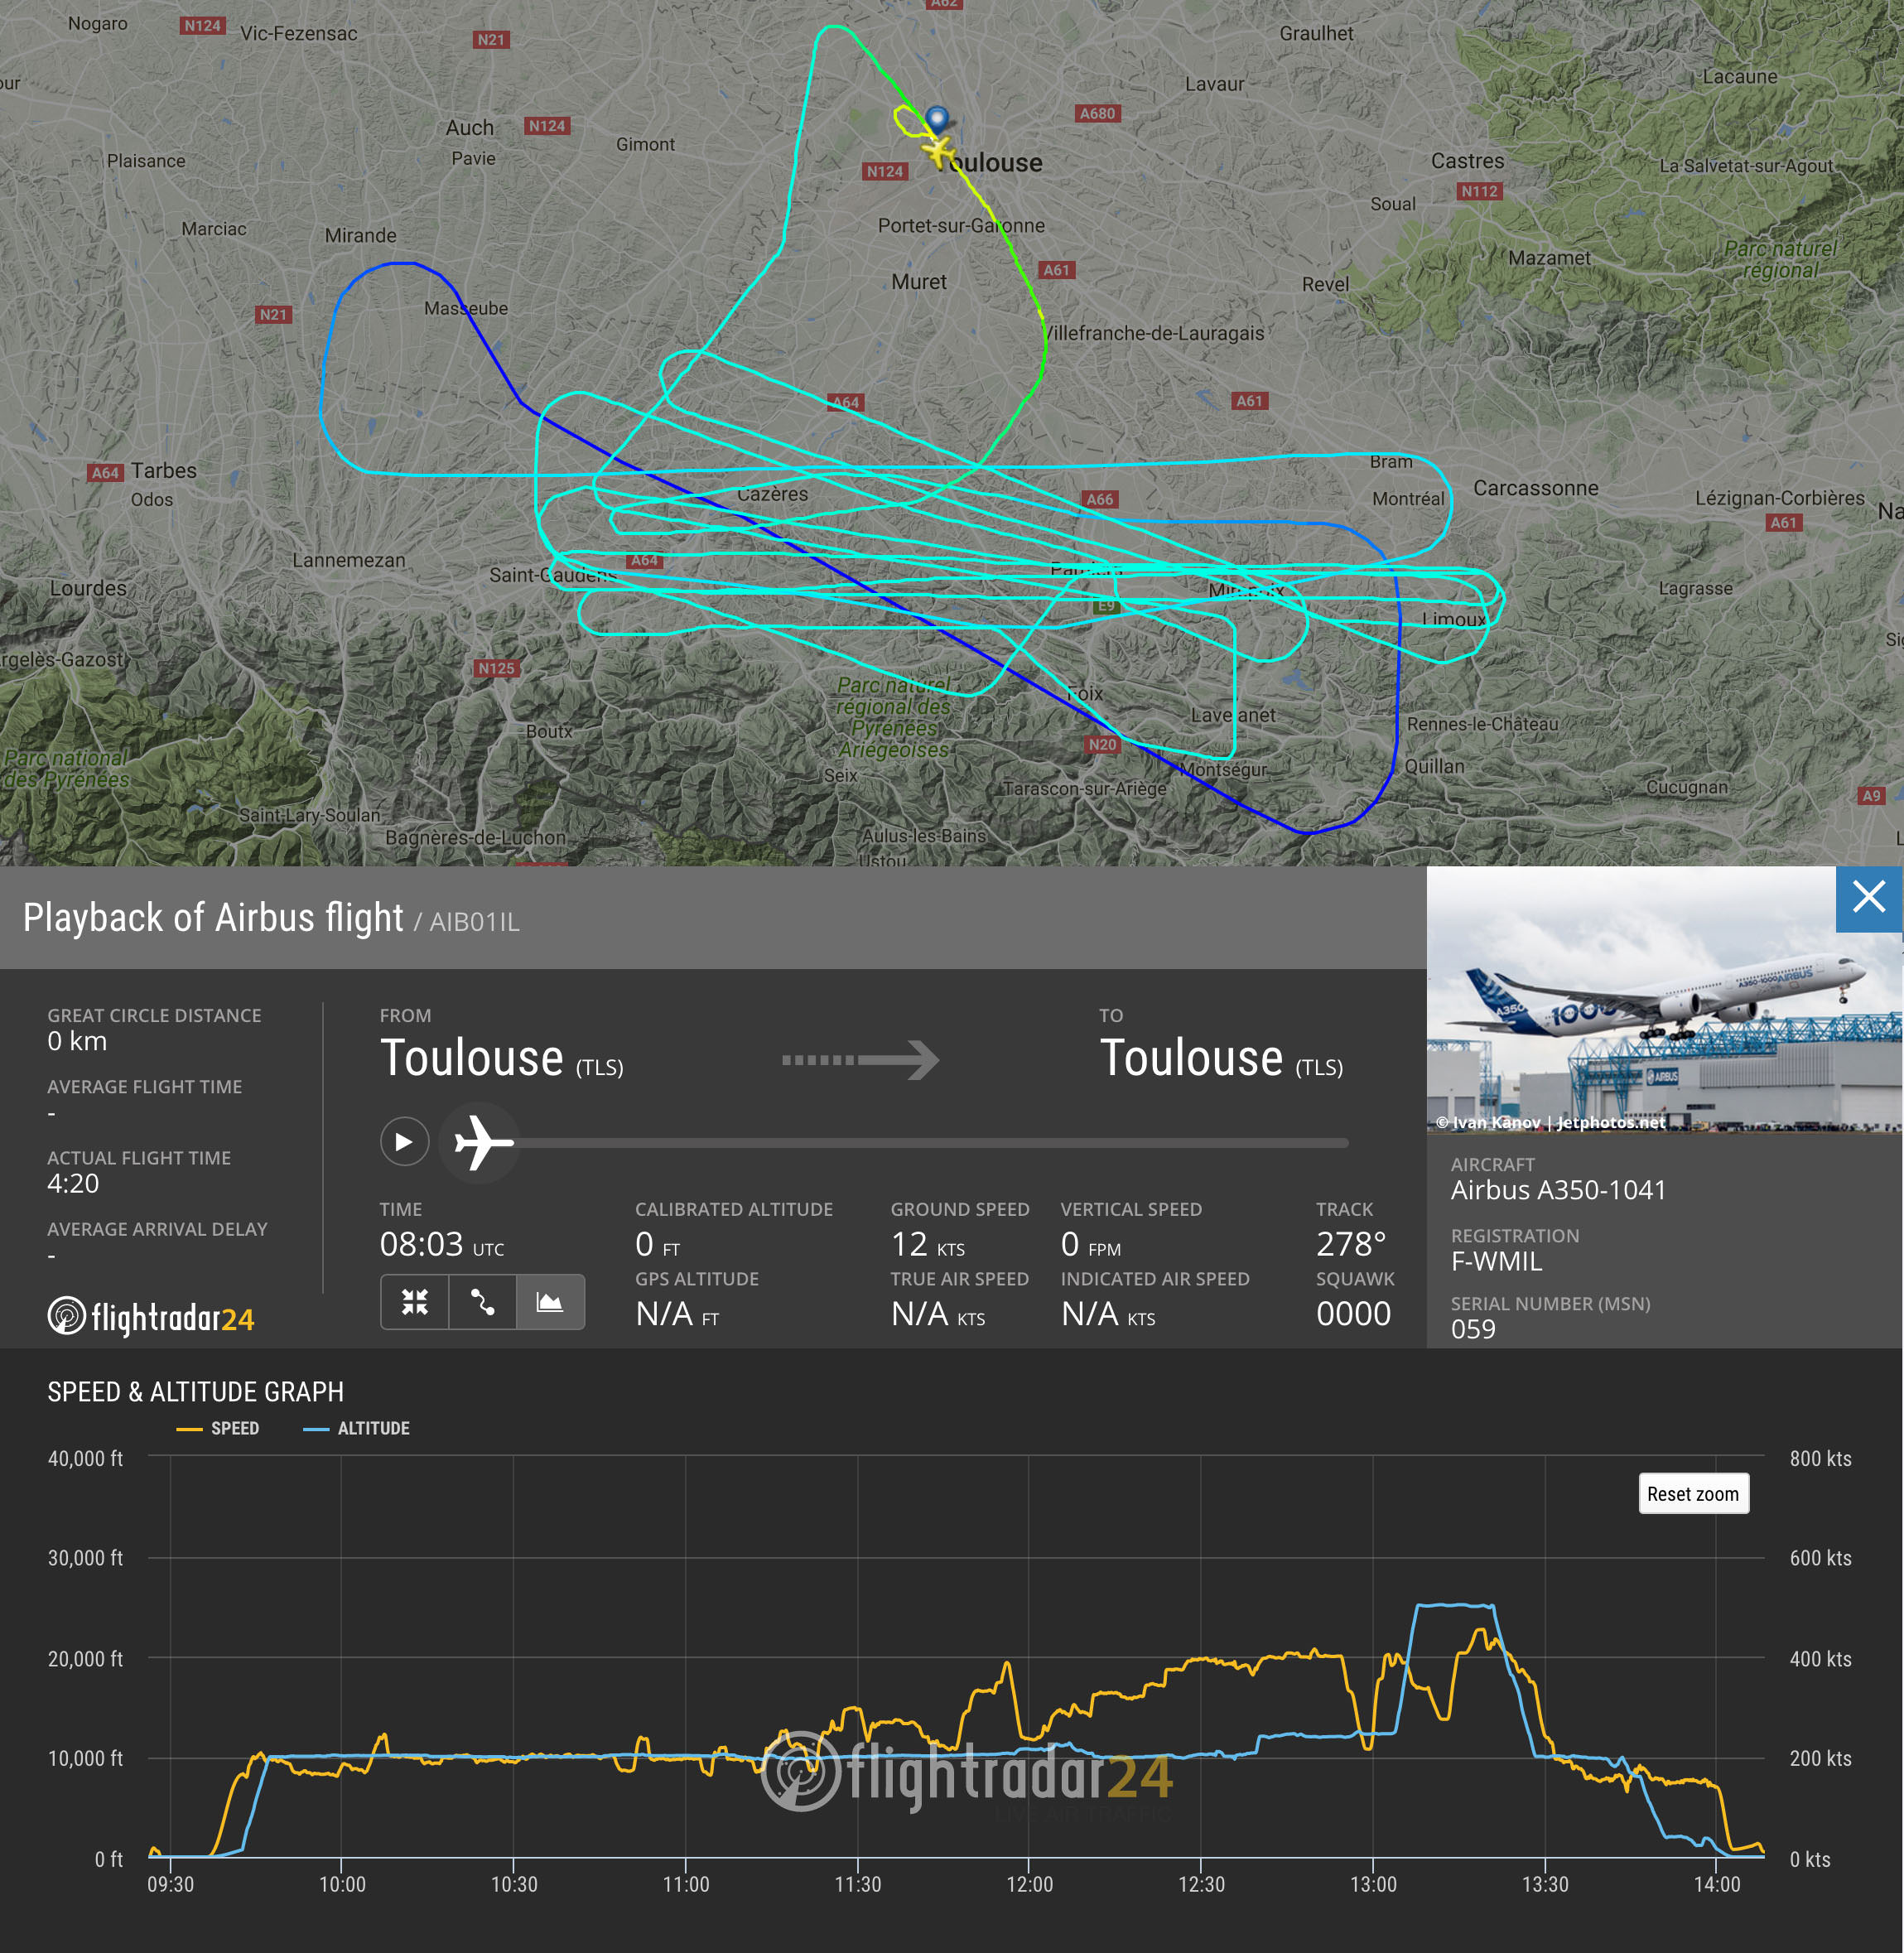 Flight track and speed & altitude graph of the Airbus A350-1000's first flight